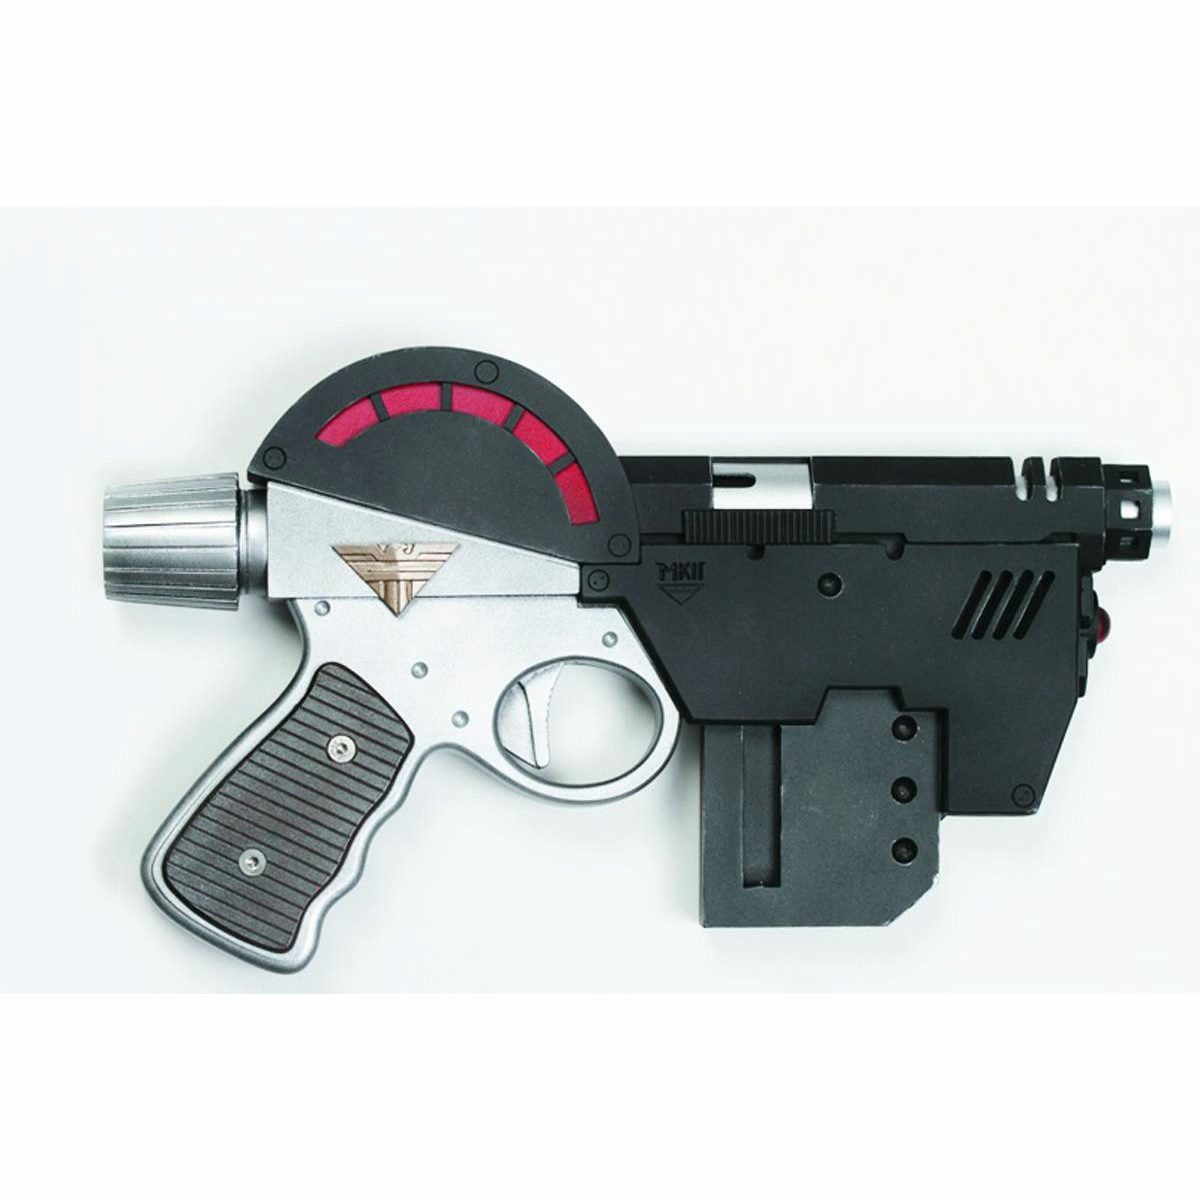 Judge Dredd Lawgiver MK2 1/1 Scale Prop Replica